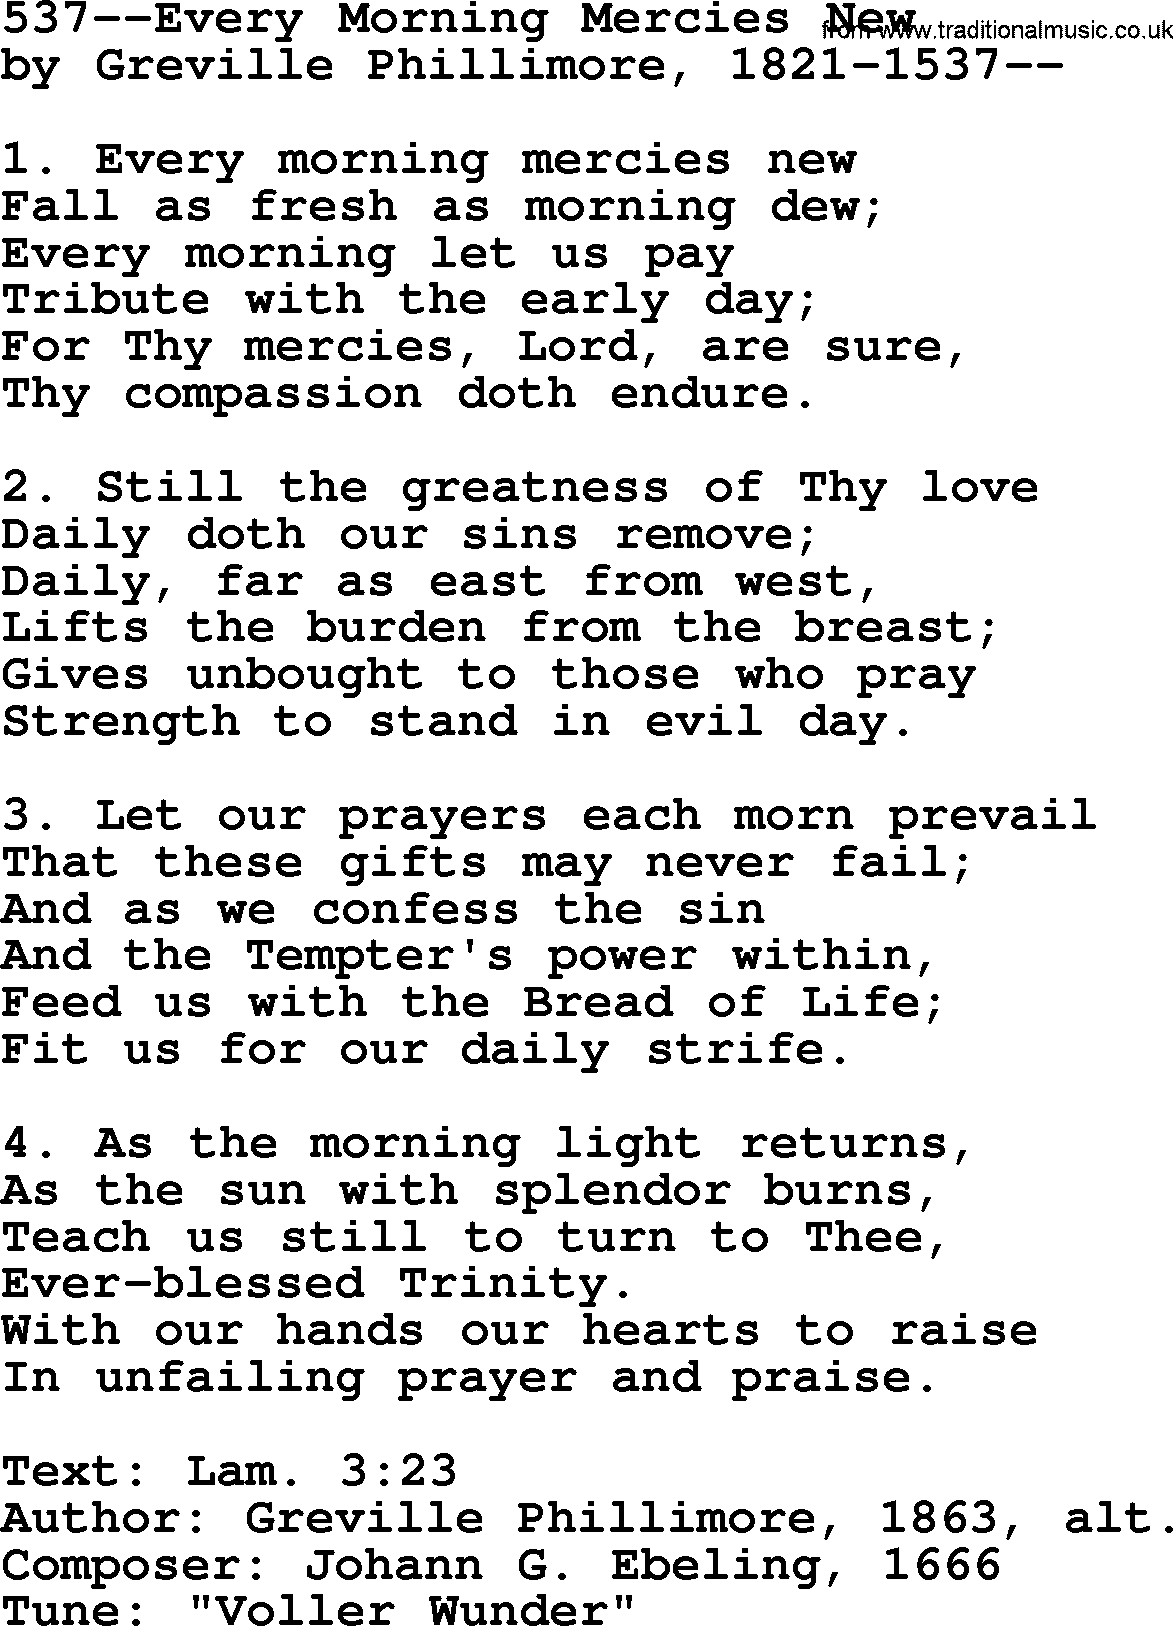 Lutheran Hymns, Song:537--Every Morning Mercies New - lyrics and PDF